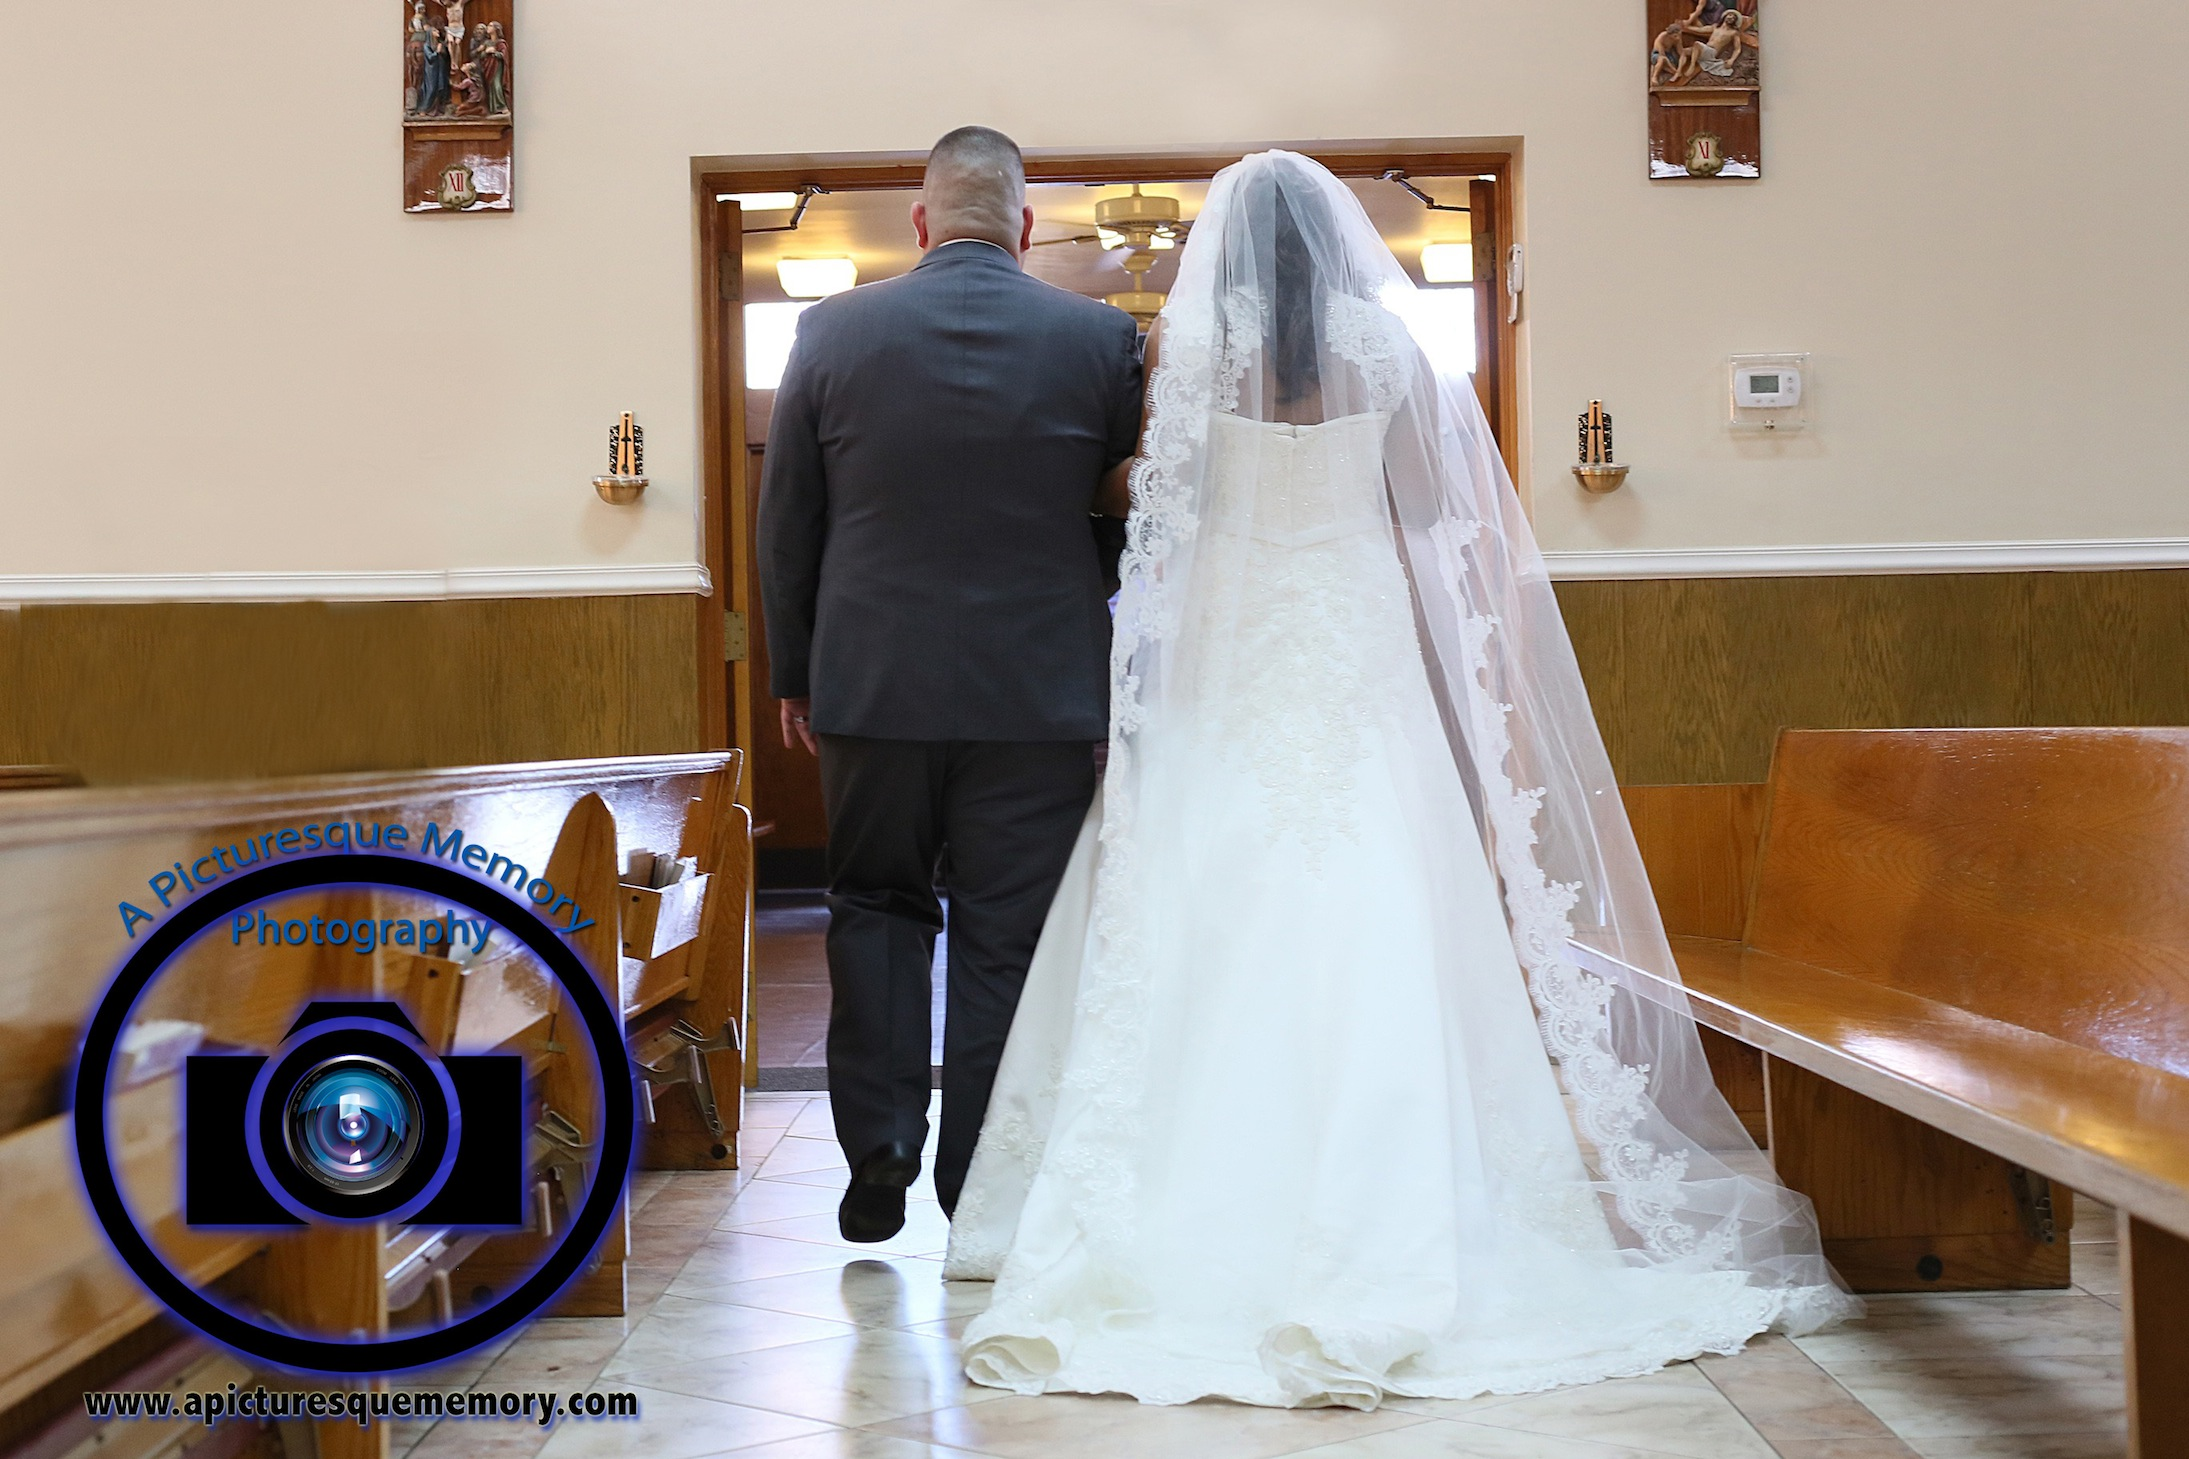 #njwedding, #njweddingphotography, #newbrunswickweddingphotographer#weddingphotos, #apicturesquememoryphotography, #ourladyofmountcarmelweddingphotographer, #weddingceremony, #brideandgroomrecessional